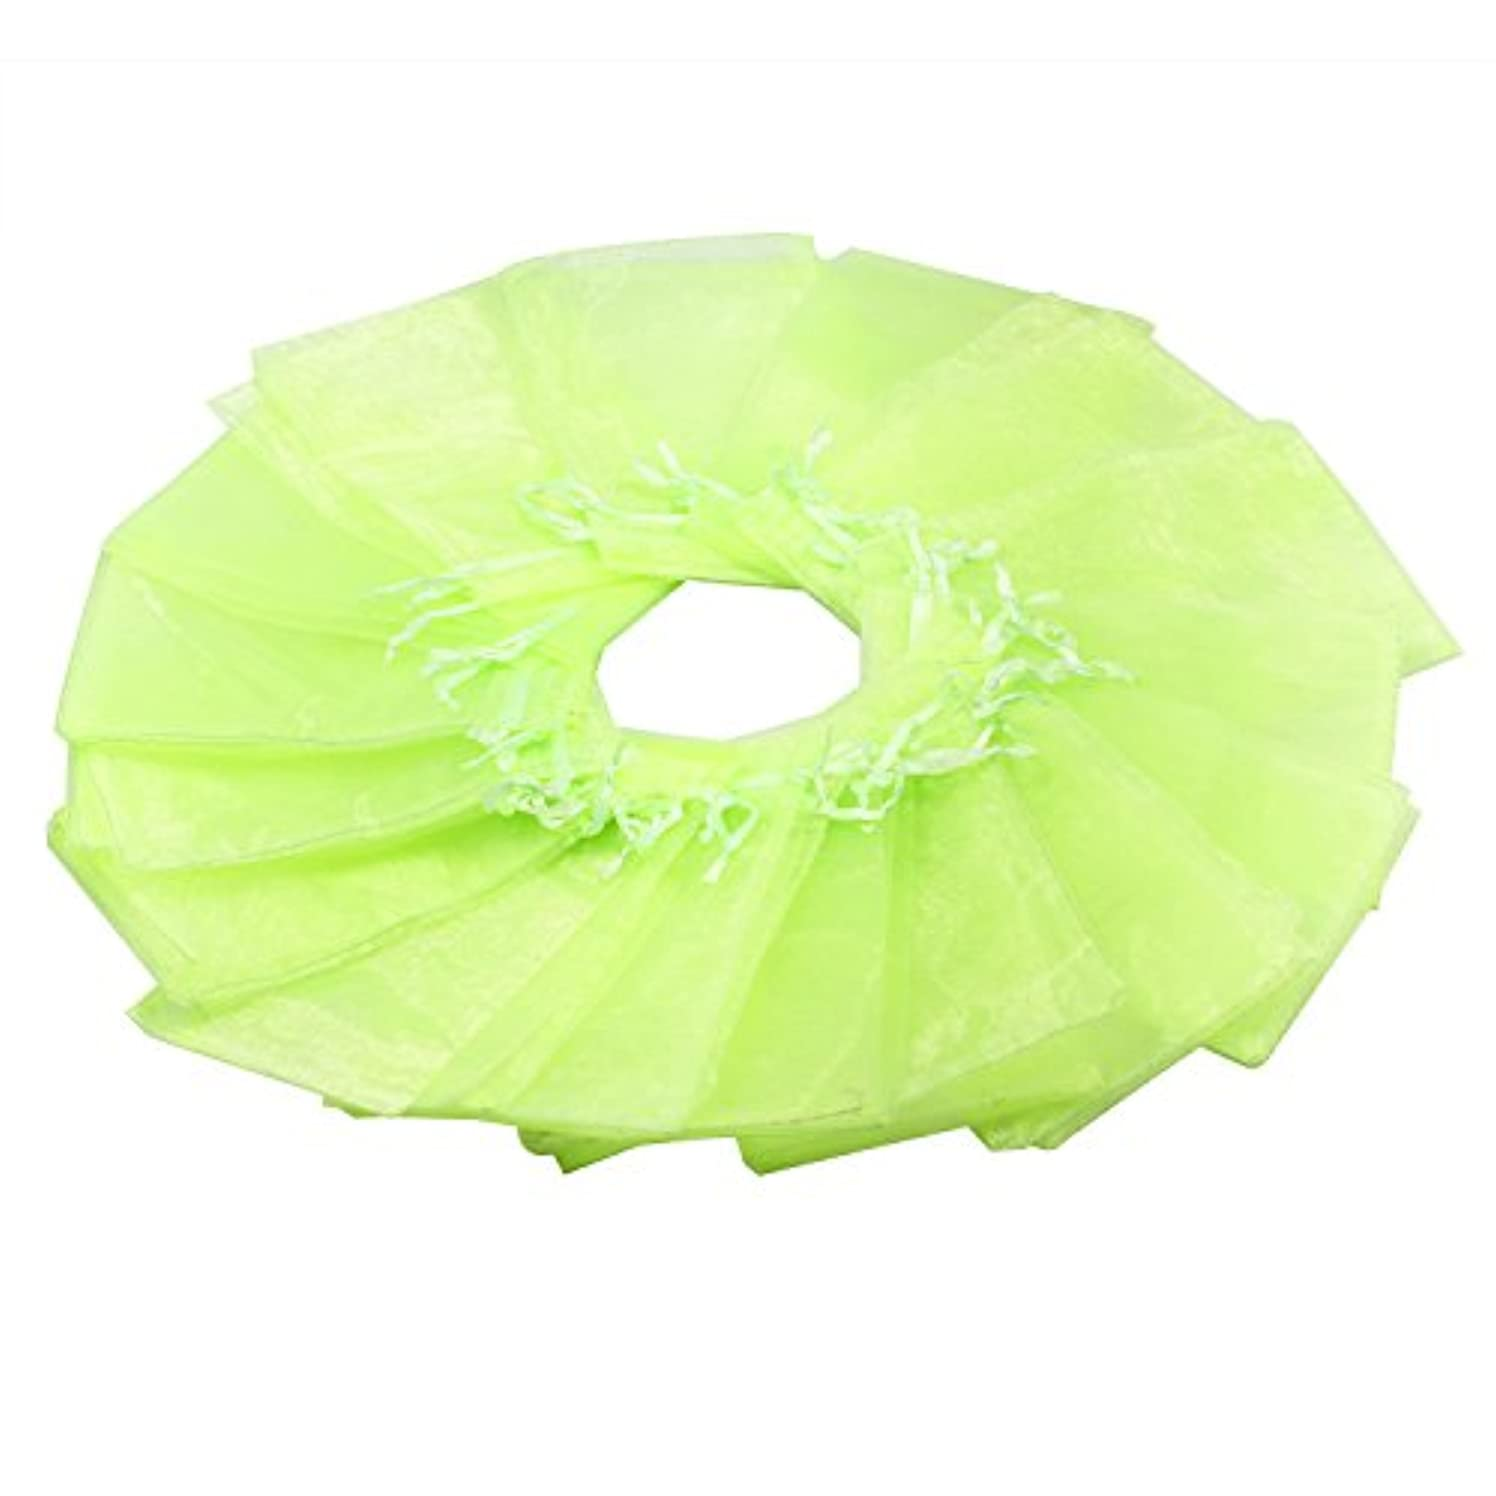 100Pcs 5X7 Inches Sheer Drawstring Organza Jewelry Pouches Wedding Party Christmas Favor Gift Bags (Apple Green)